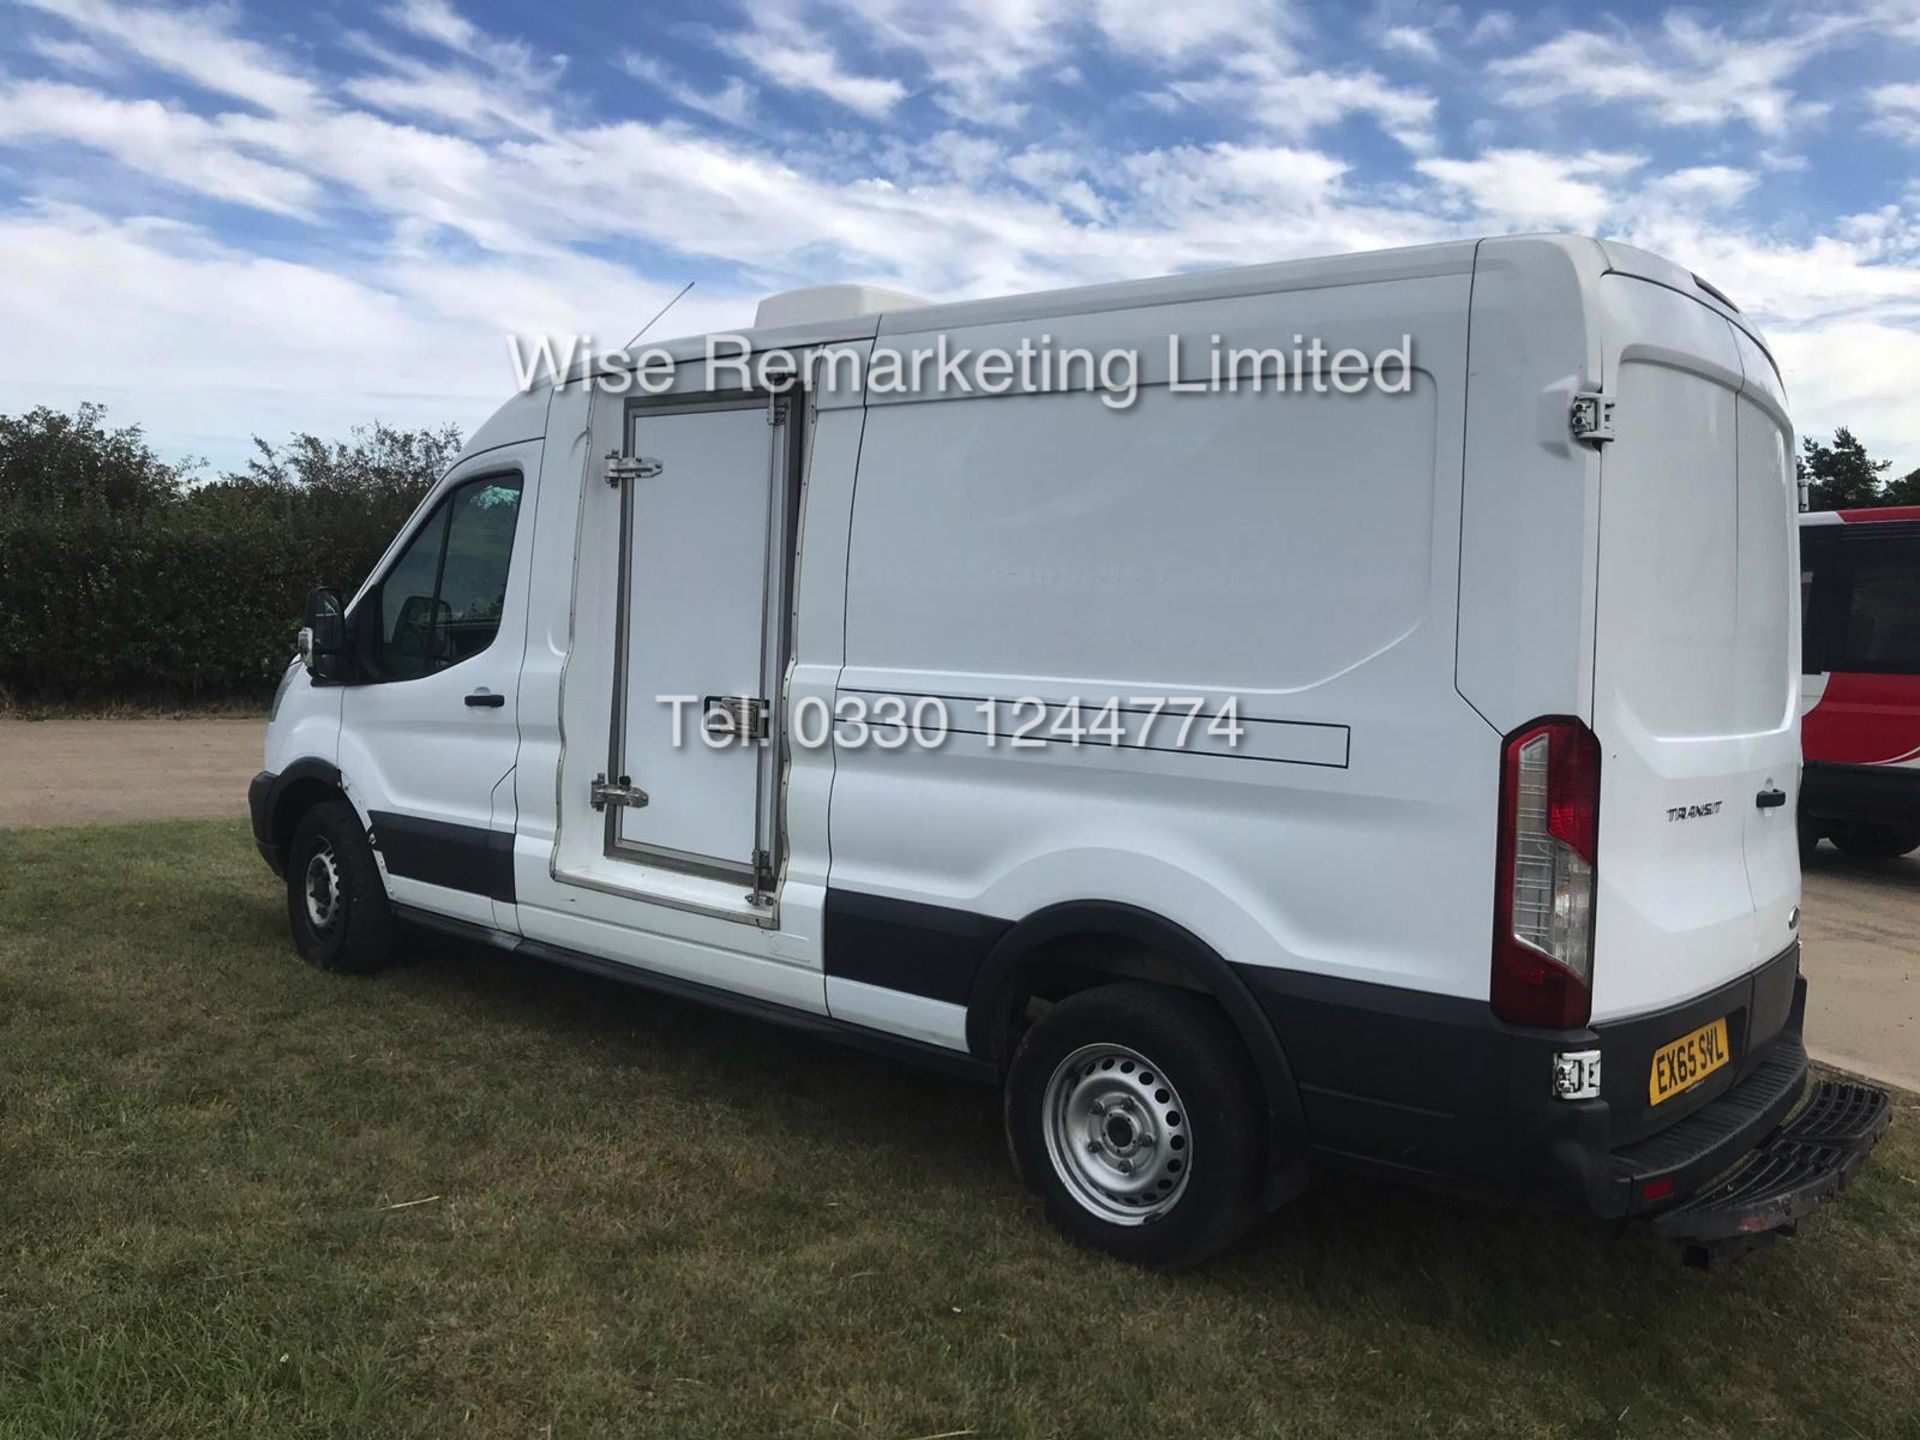 Lot 18 - FORD TRANSIT 350 2.2 LWB FRIDGE VAN (2015 65 REG) GAH UNIT WITH 2 COMPARTMENTS - 1 KEEPER FROM NEW